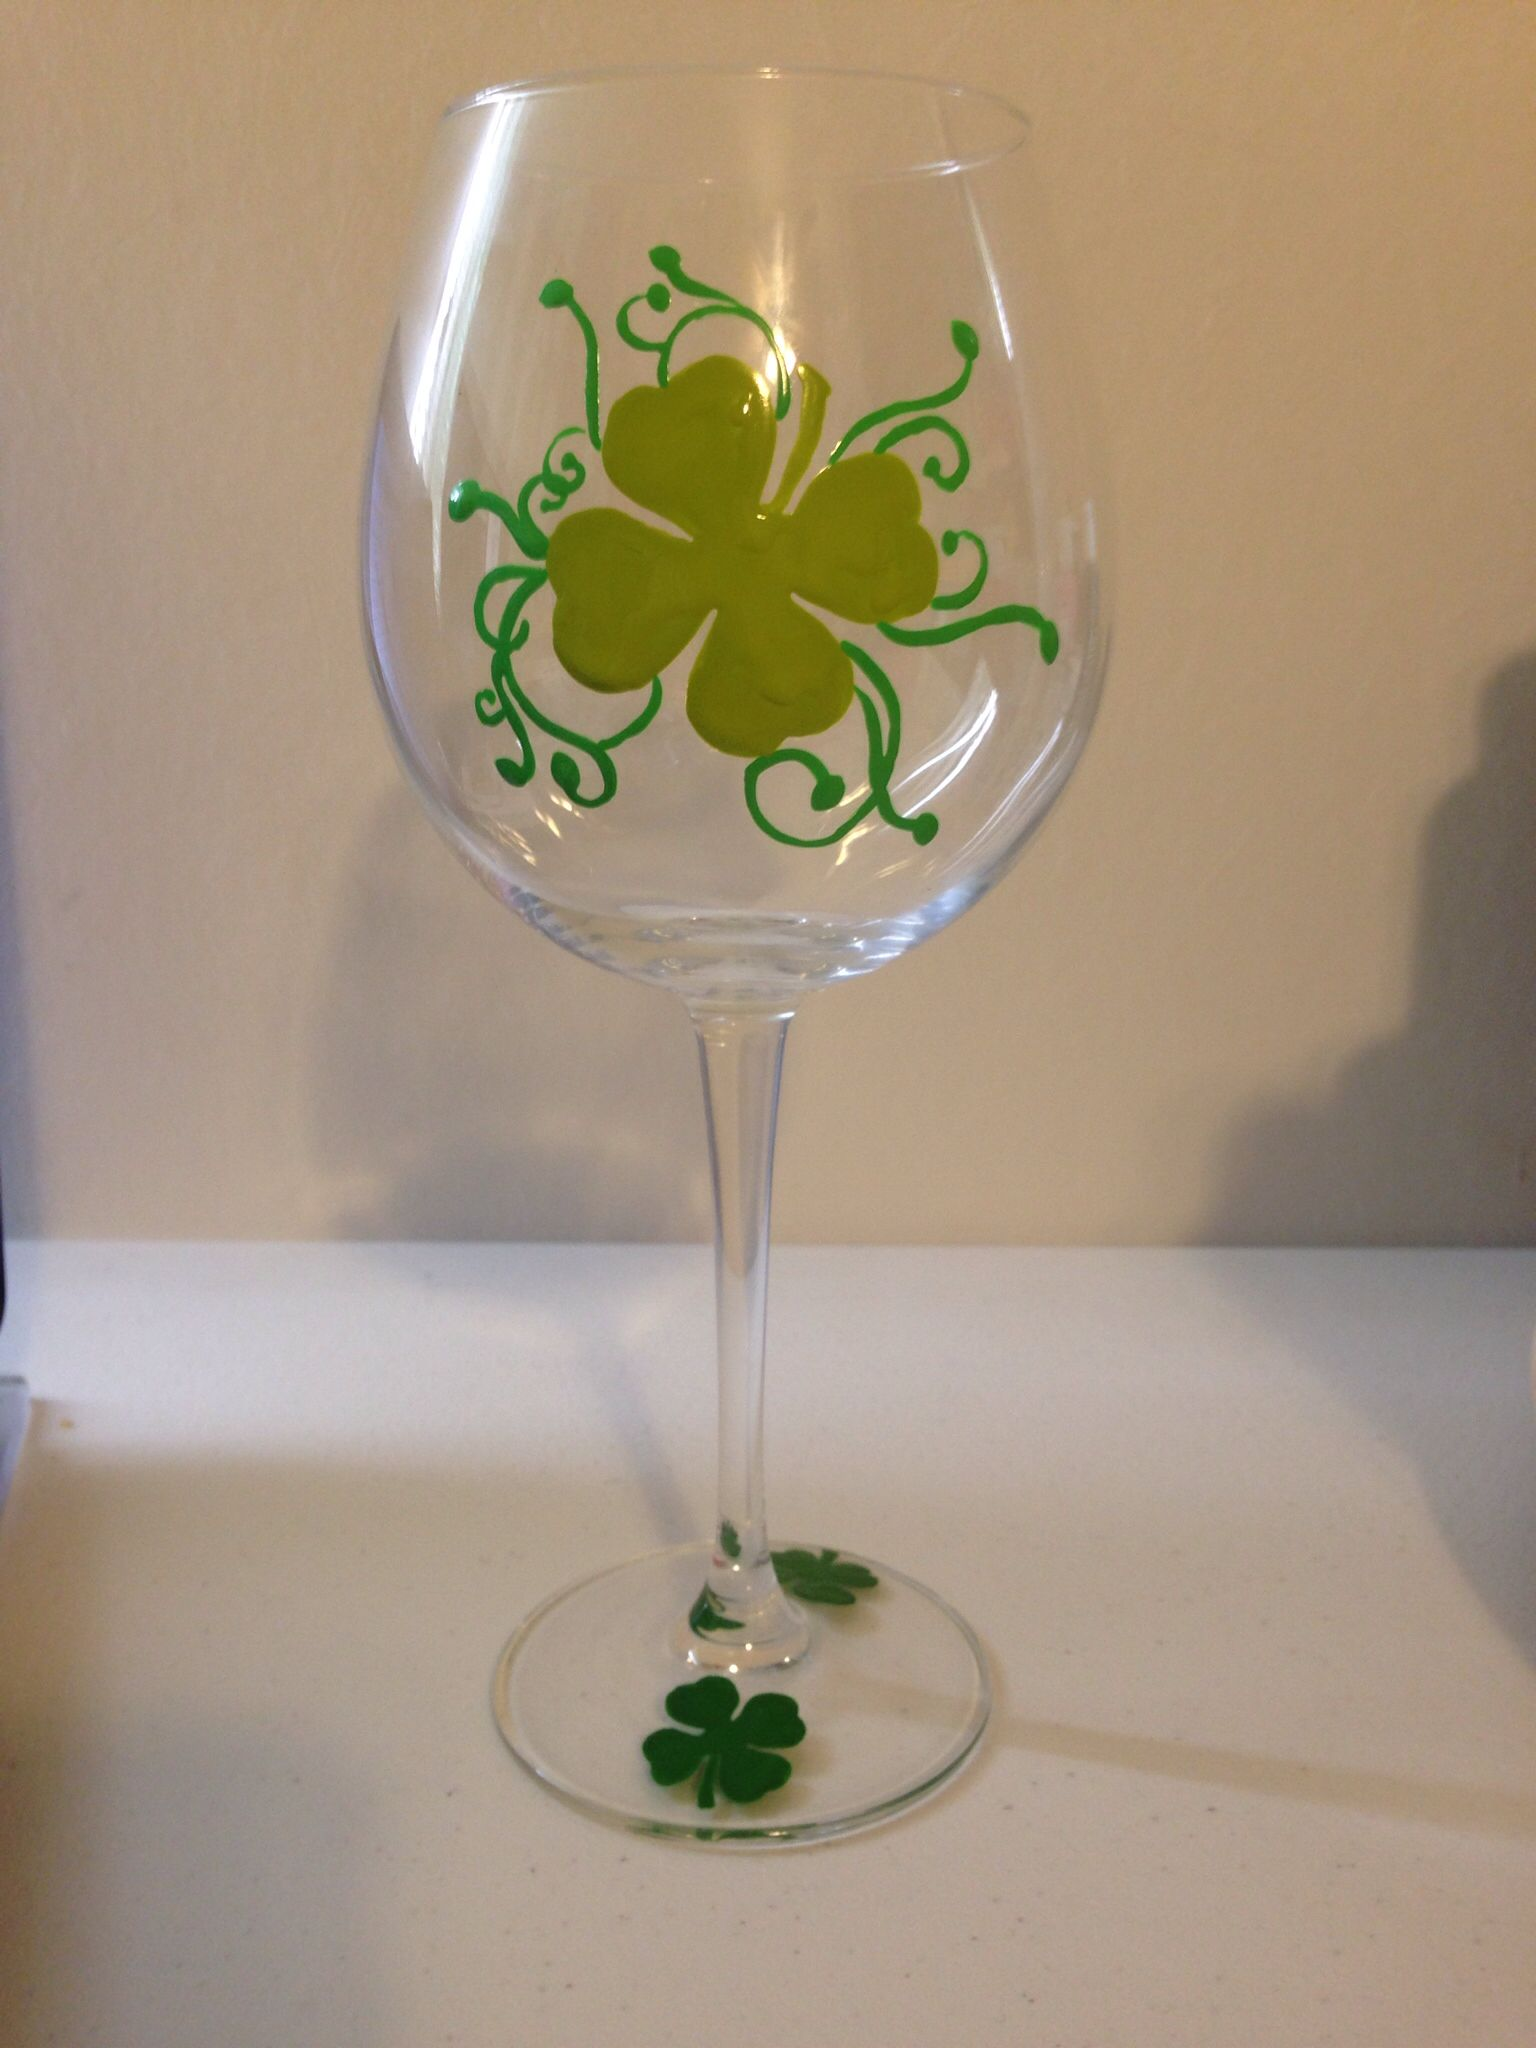 St patrick 39 s day wine glass painted by erika 39 s hand painted a glass look for me on fb my for Pictures painted on glass